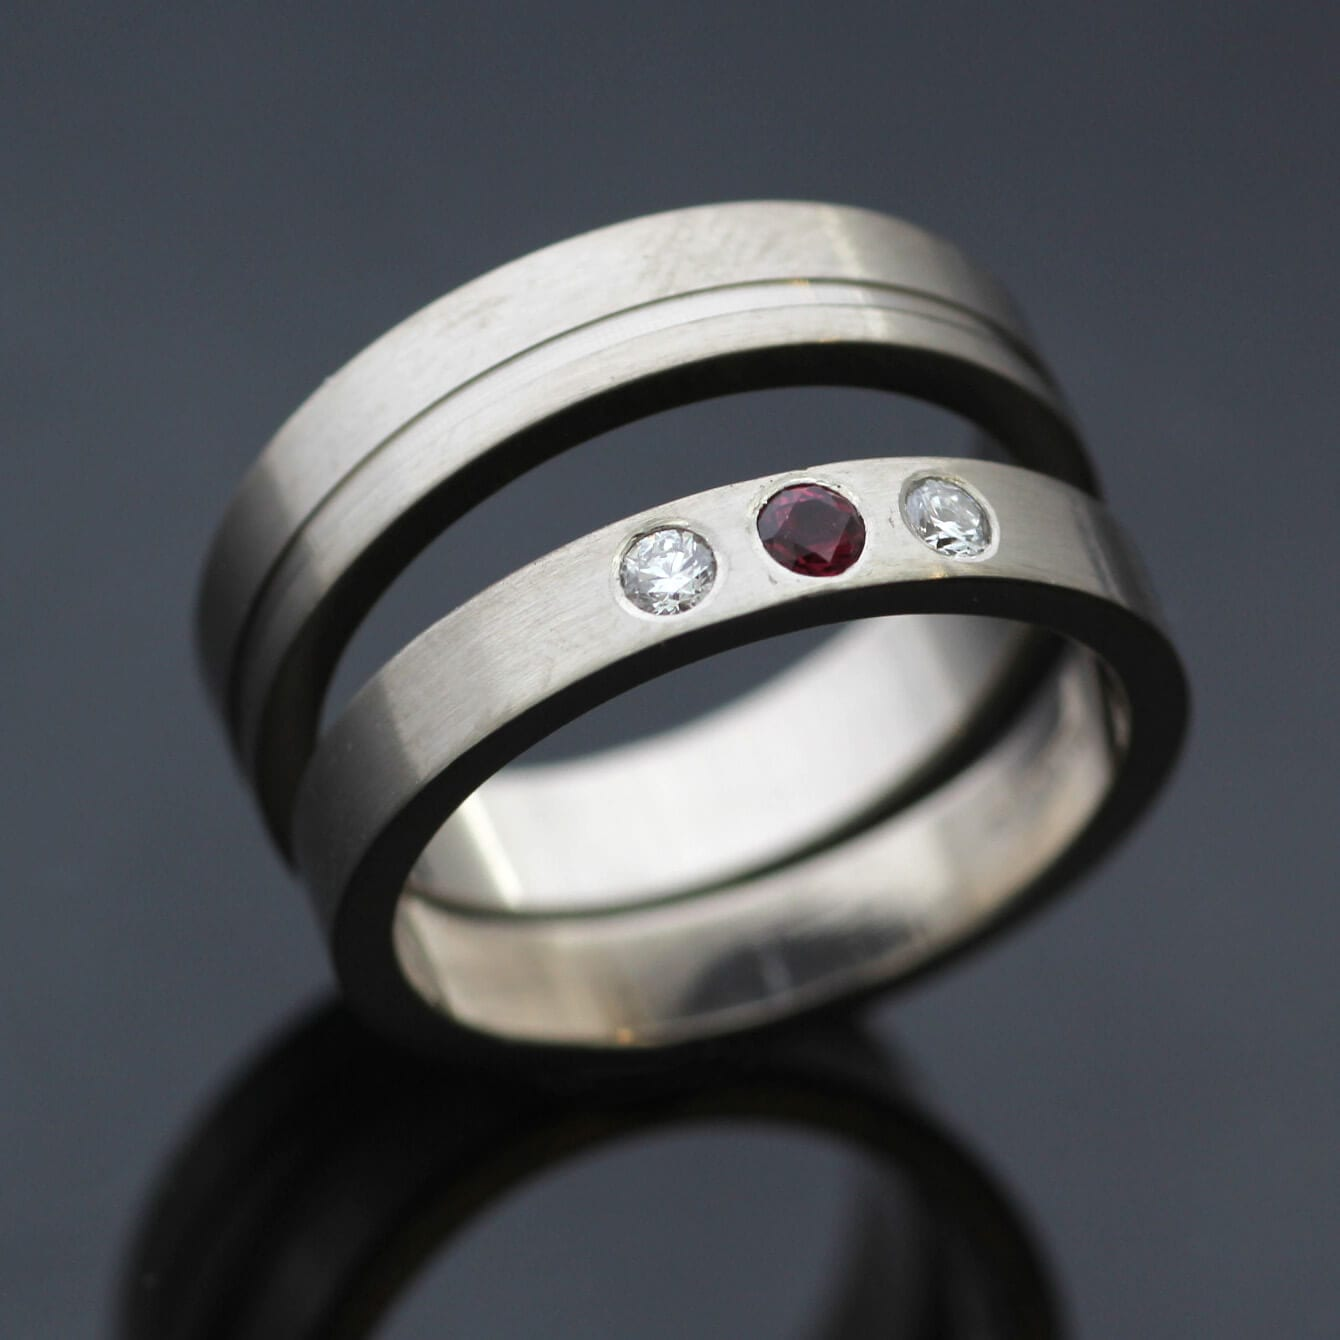 Bespoke White Gold wedding bands with Ruby Diamond gemstones